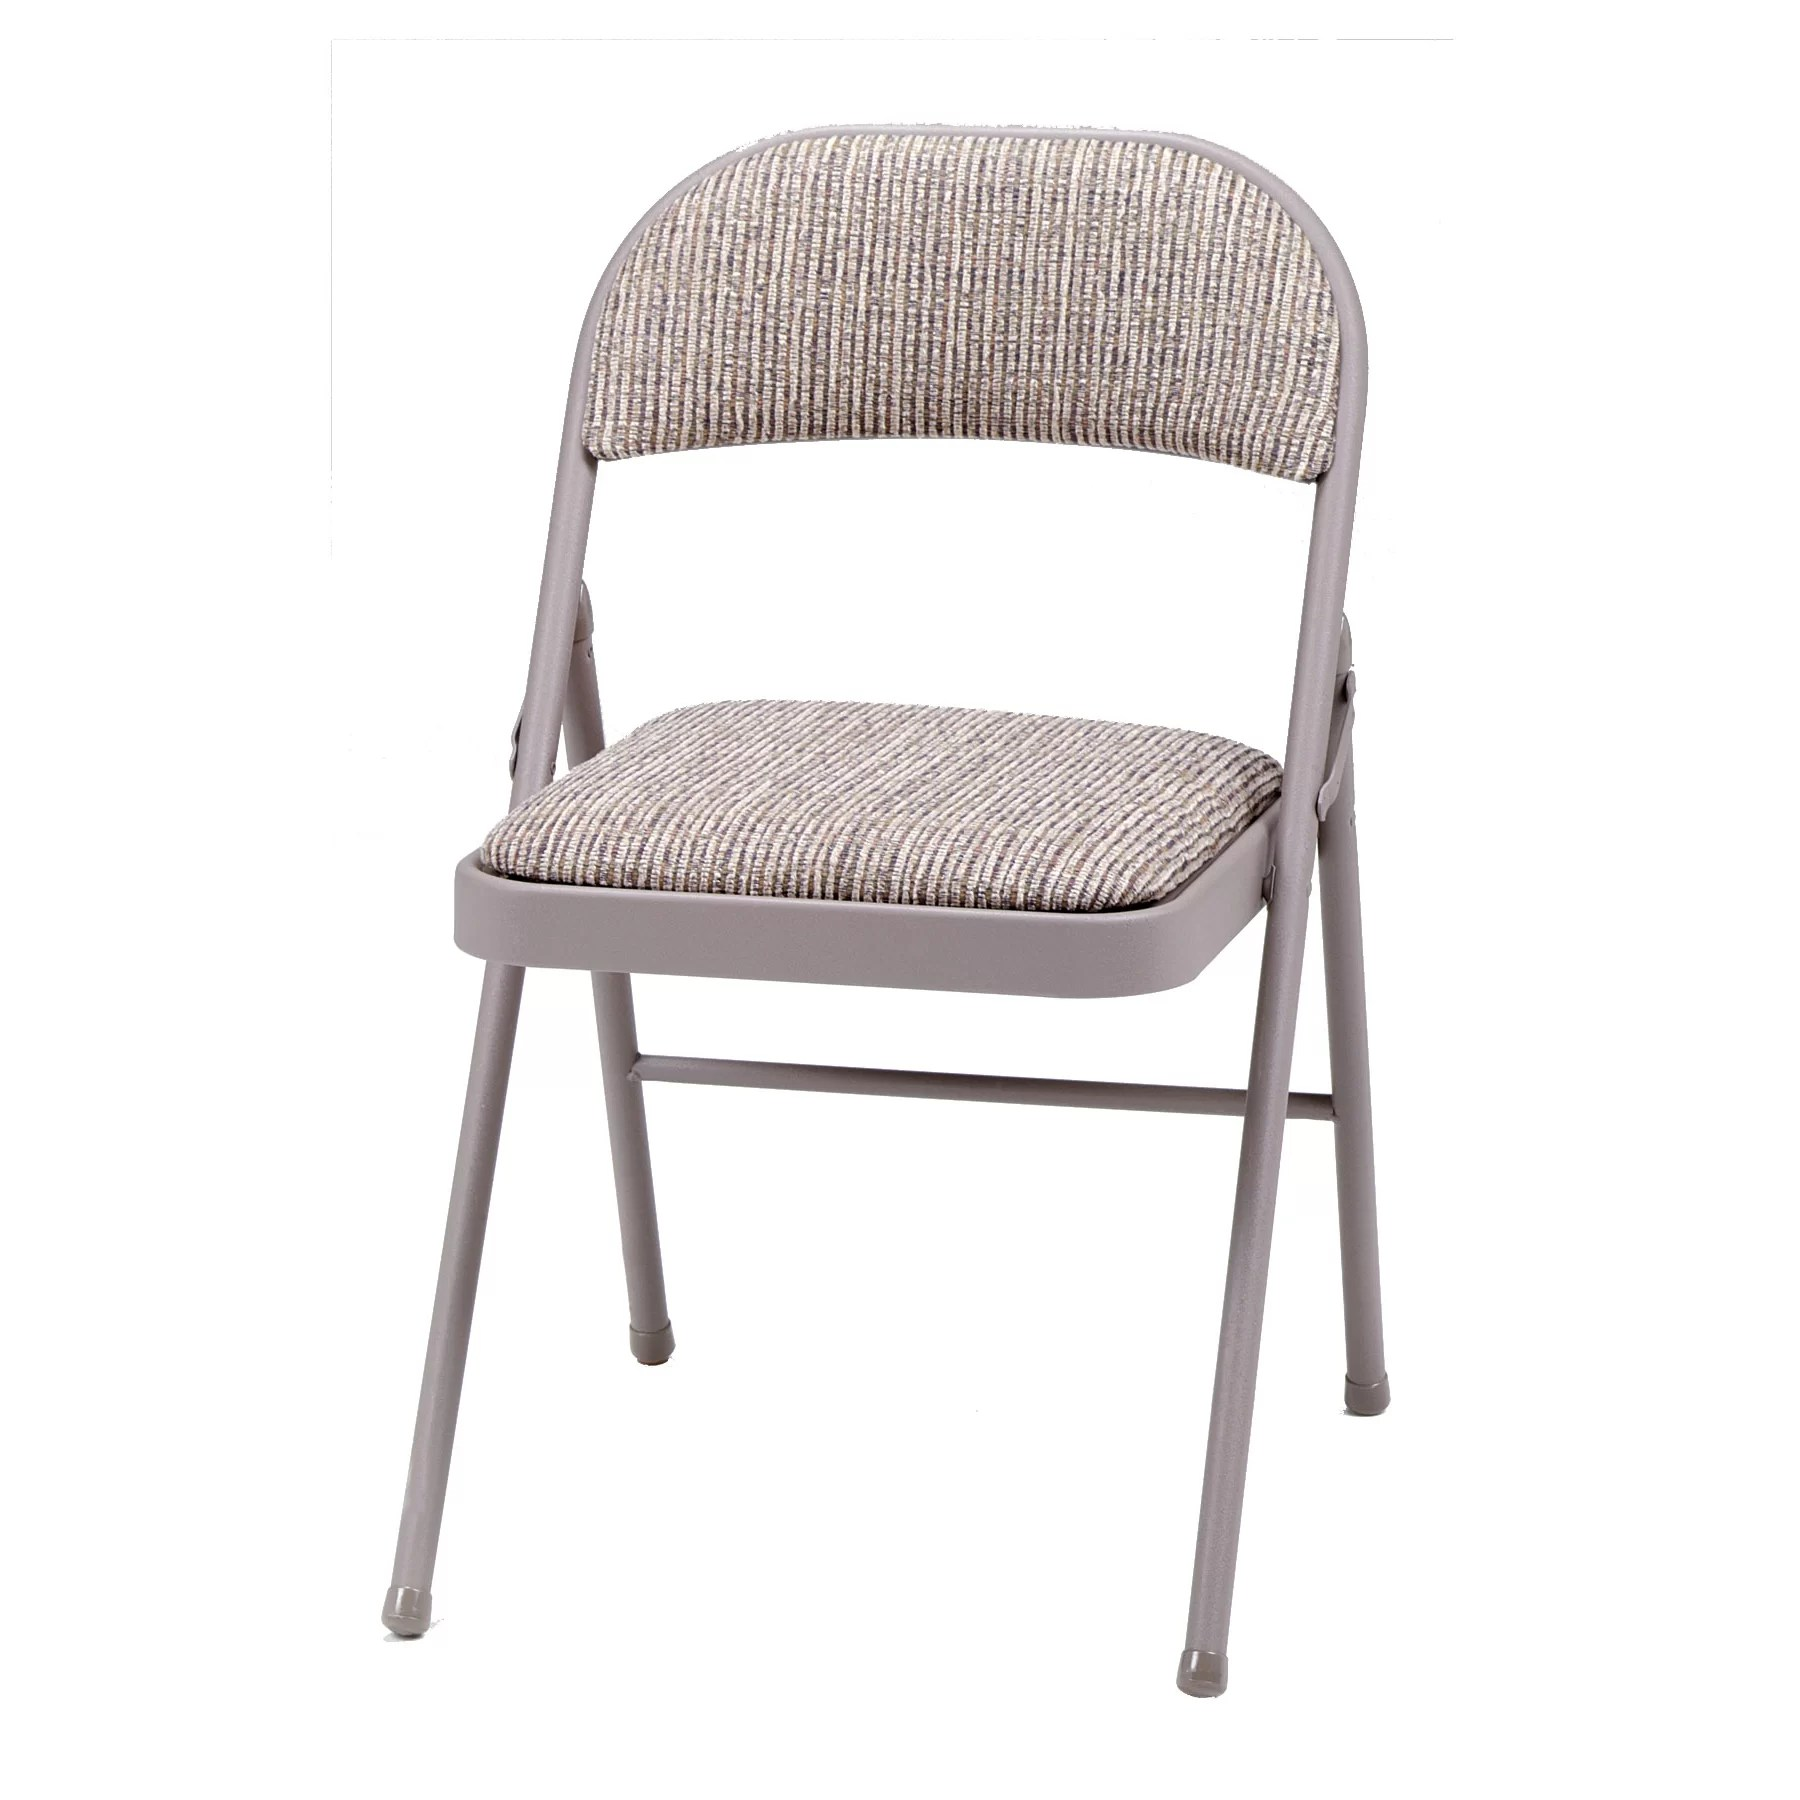 Upholstered Folding Chairs Meco Deluxe Fabric Padded Folding Chair And Reviews Wayfair